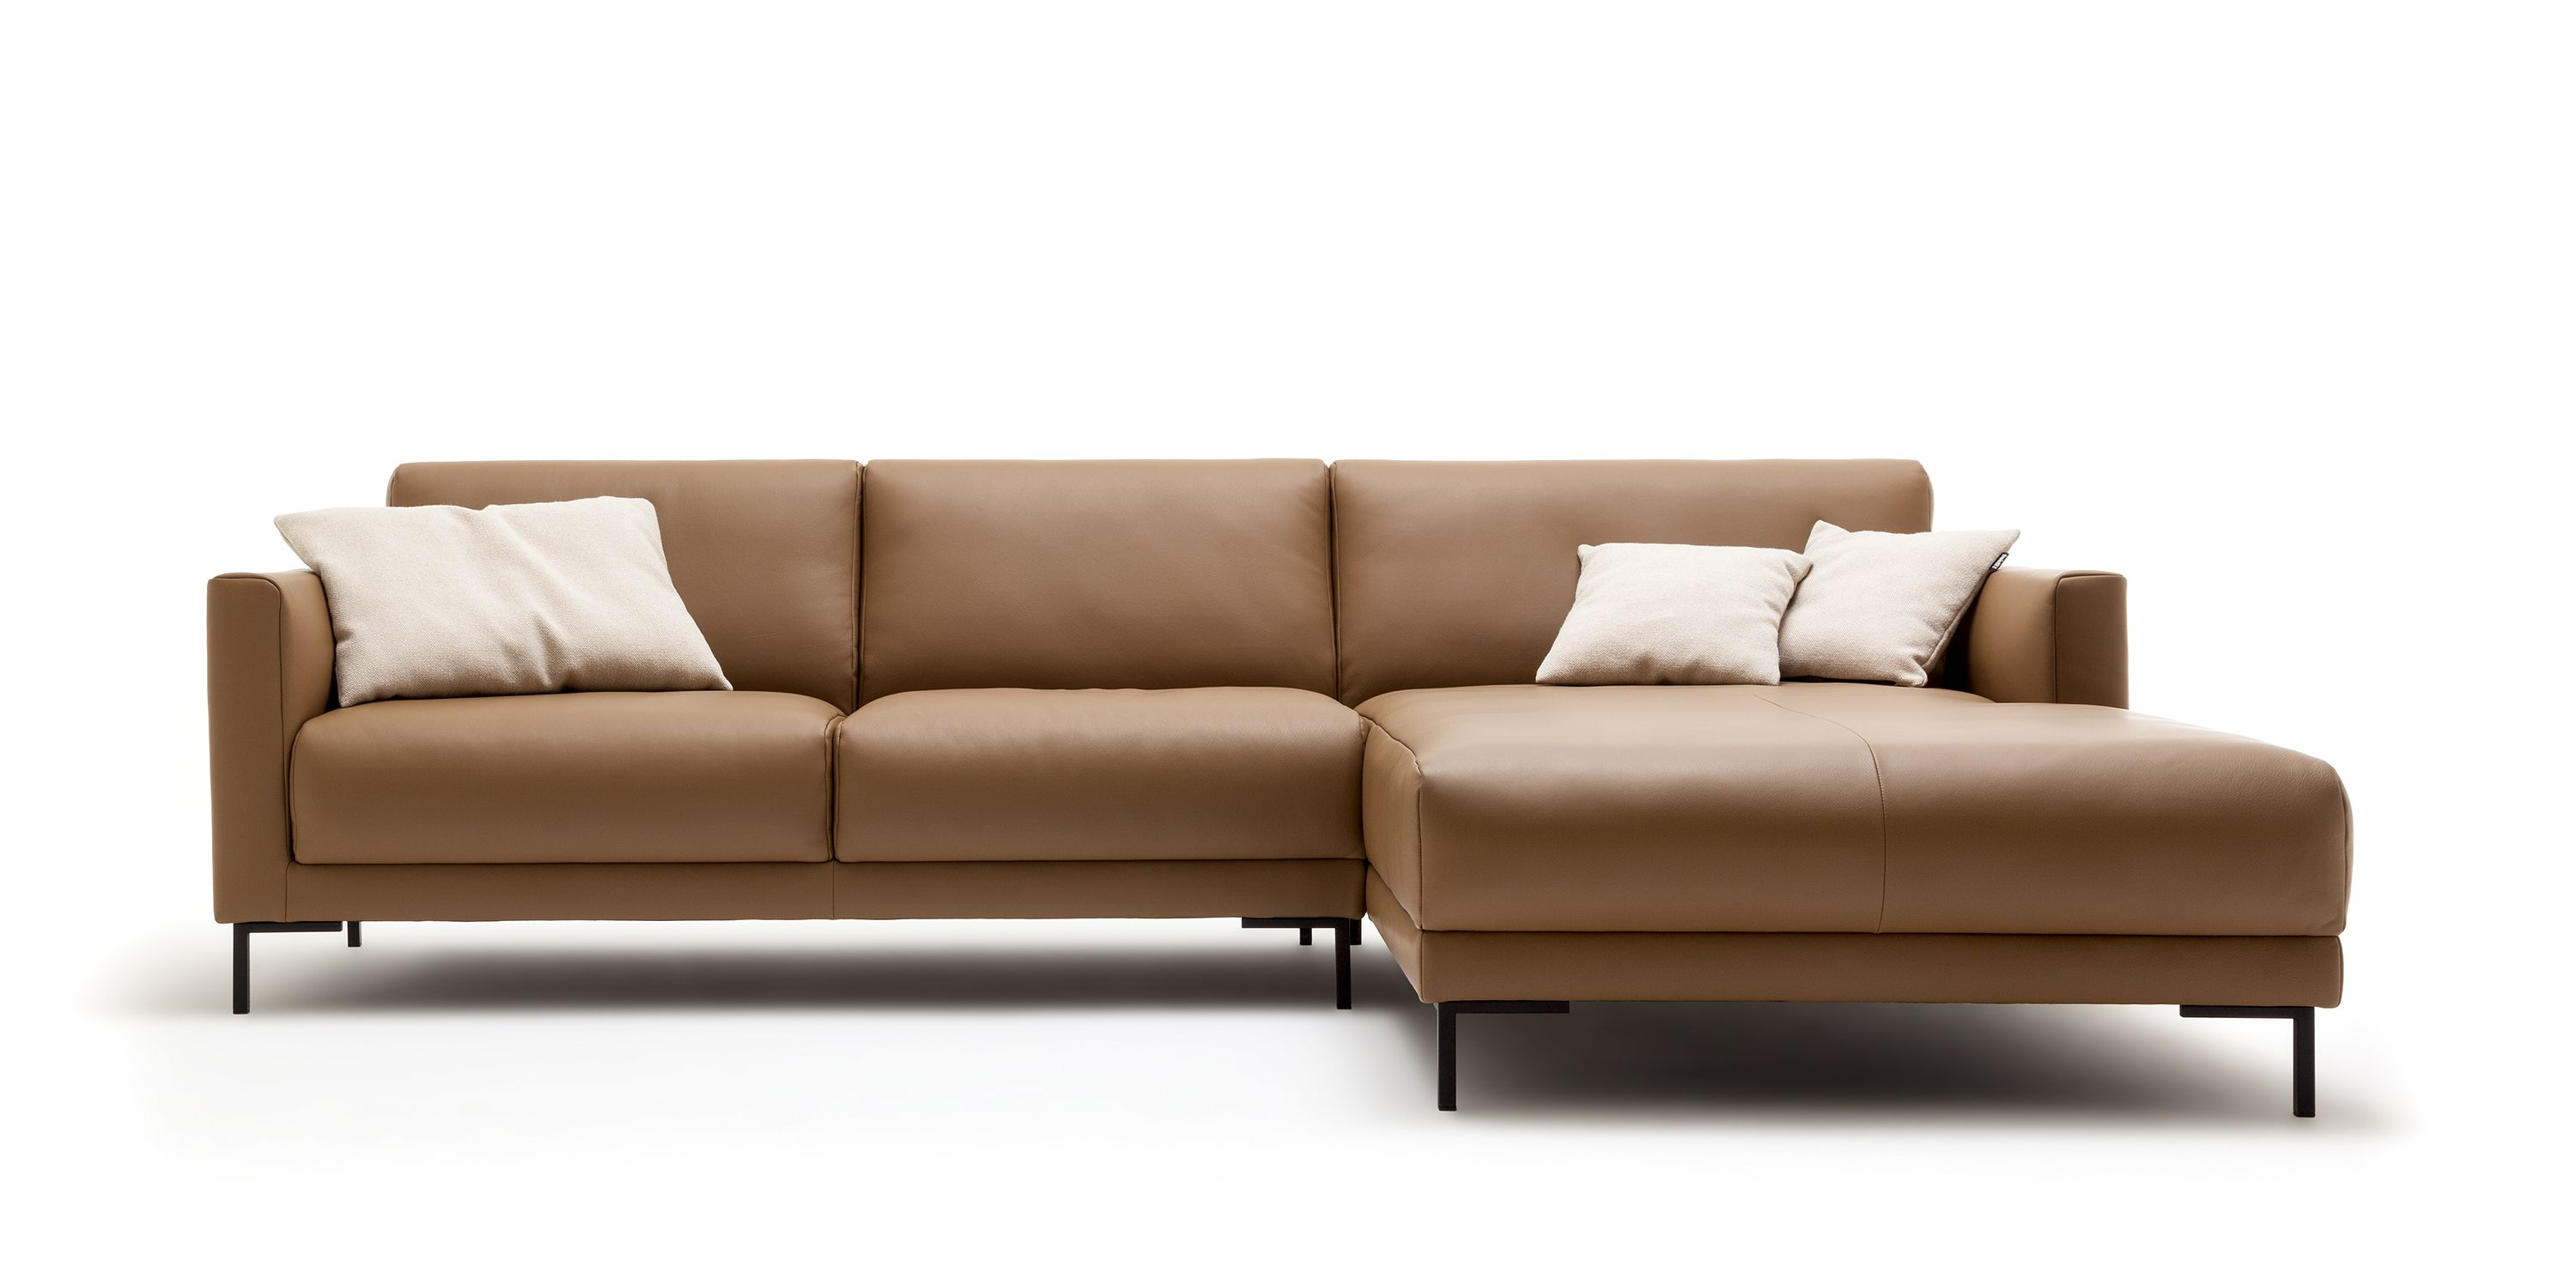 Rolf Benz Eckcouch Freistil 141 Sectional Sofa Available At Studio Anise Rolf Benz